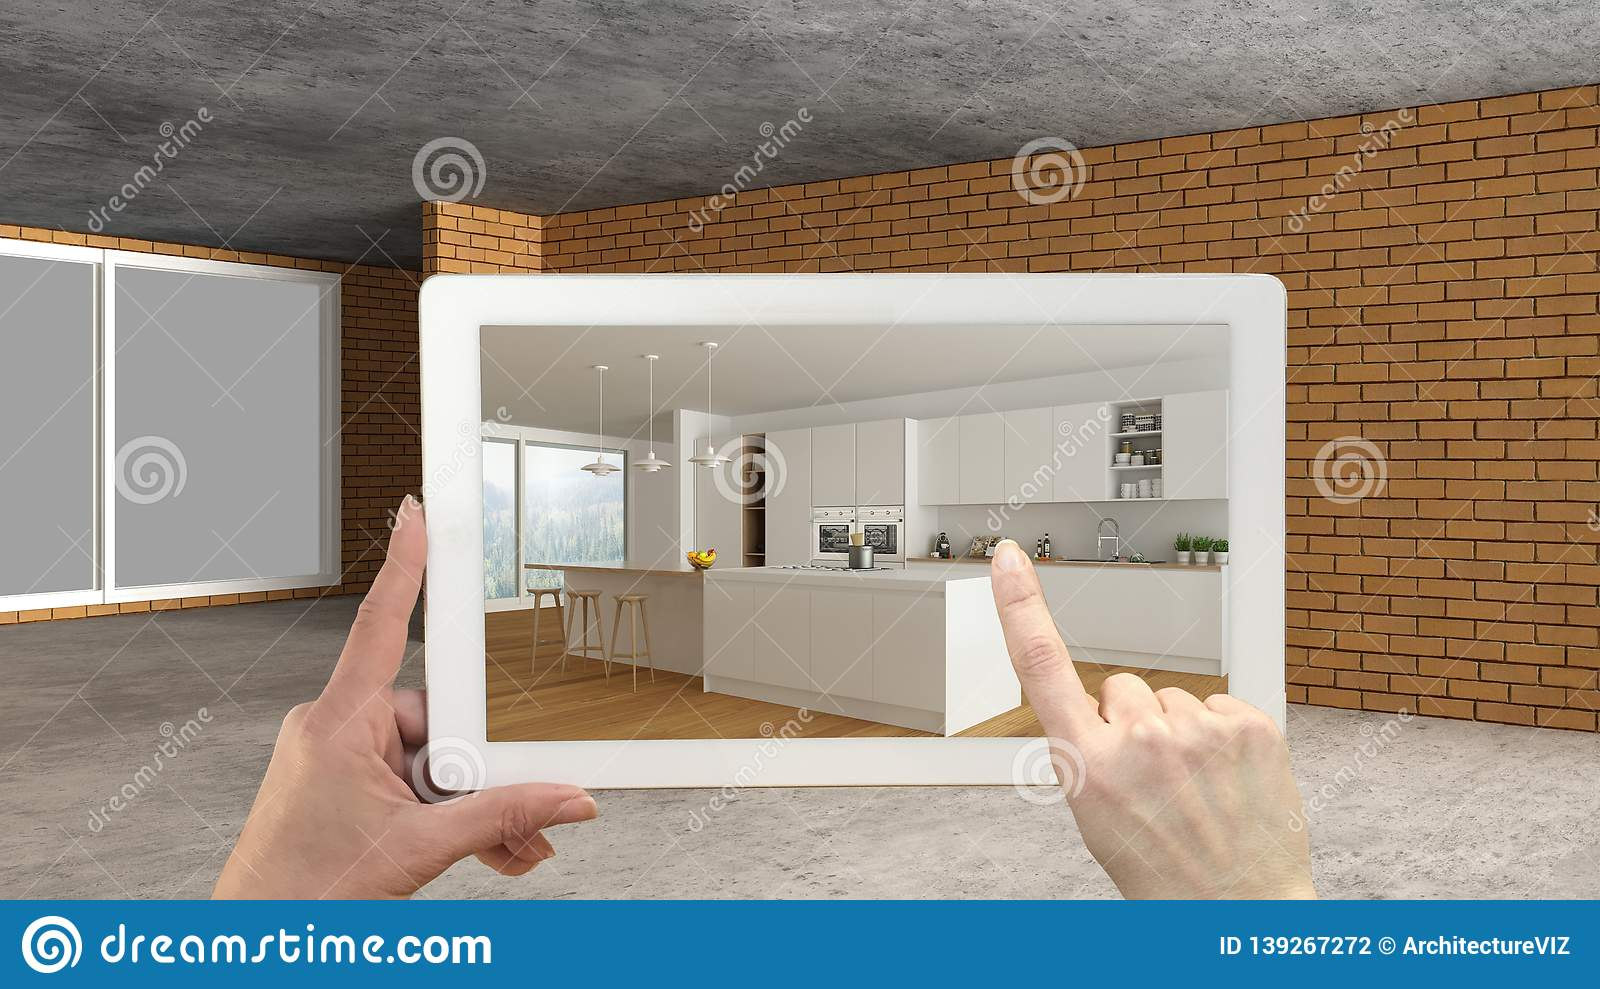 ff3ed8d3803f Augmented reality concept. Hand holding tablet with AR application used to  simulate furniture and design products in an interior construction site